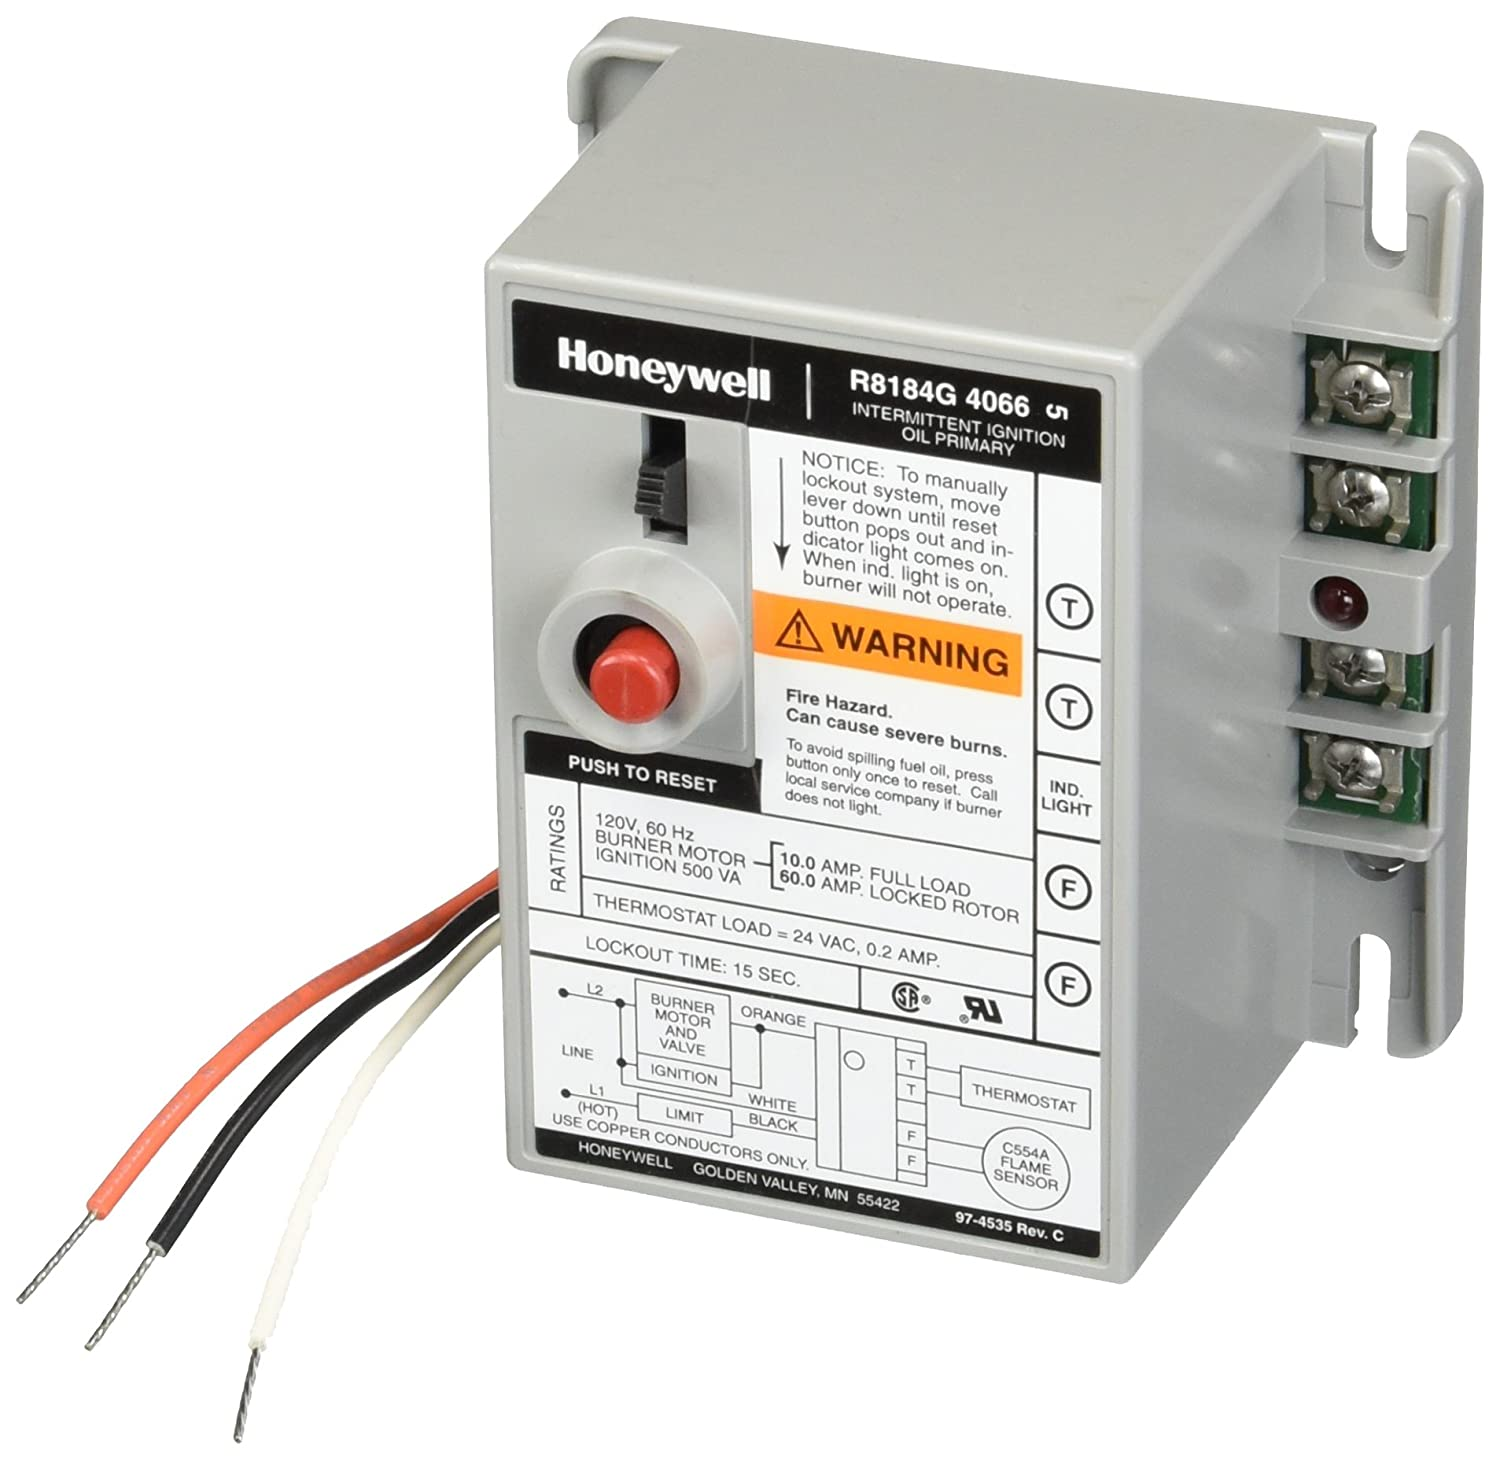 Honeywell R8184G-4066 Protectorelay Oil Burner Control with 15 s Safety  Timing, Alarm Outputs and Manual Safety Switch - Hvac Controls - Amazon.com